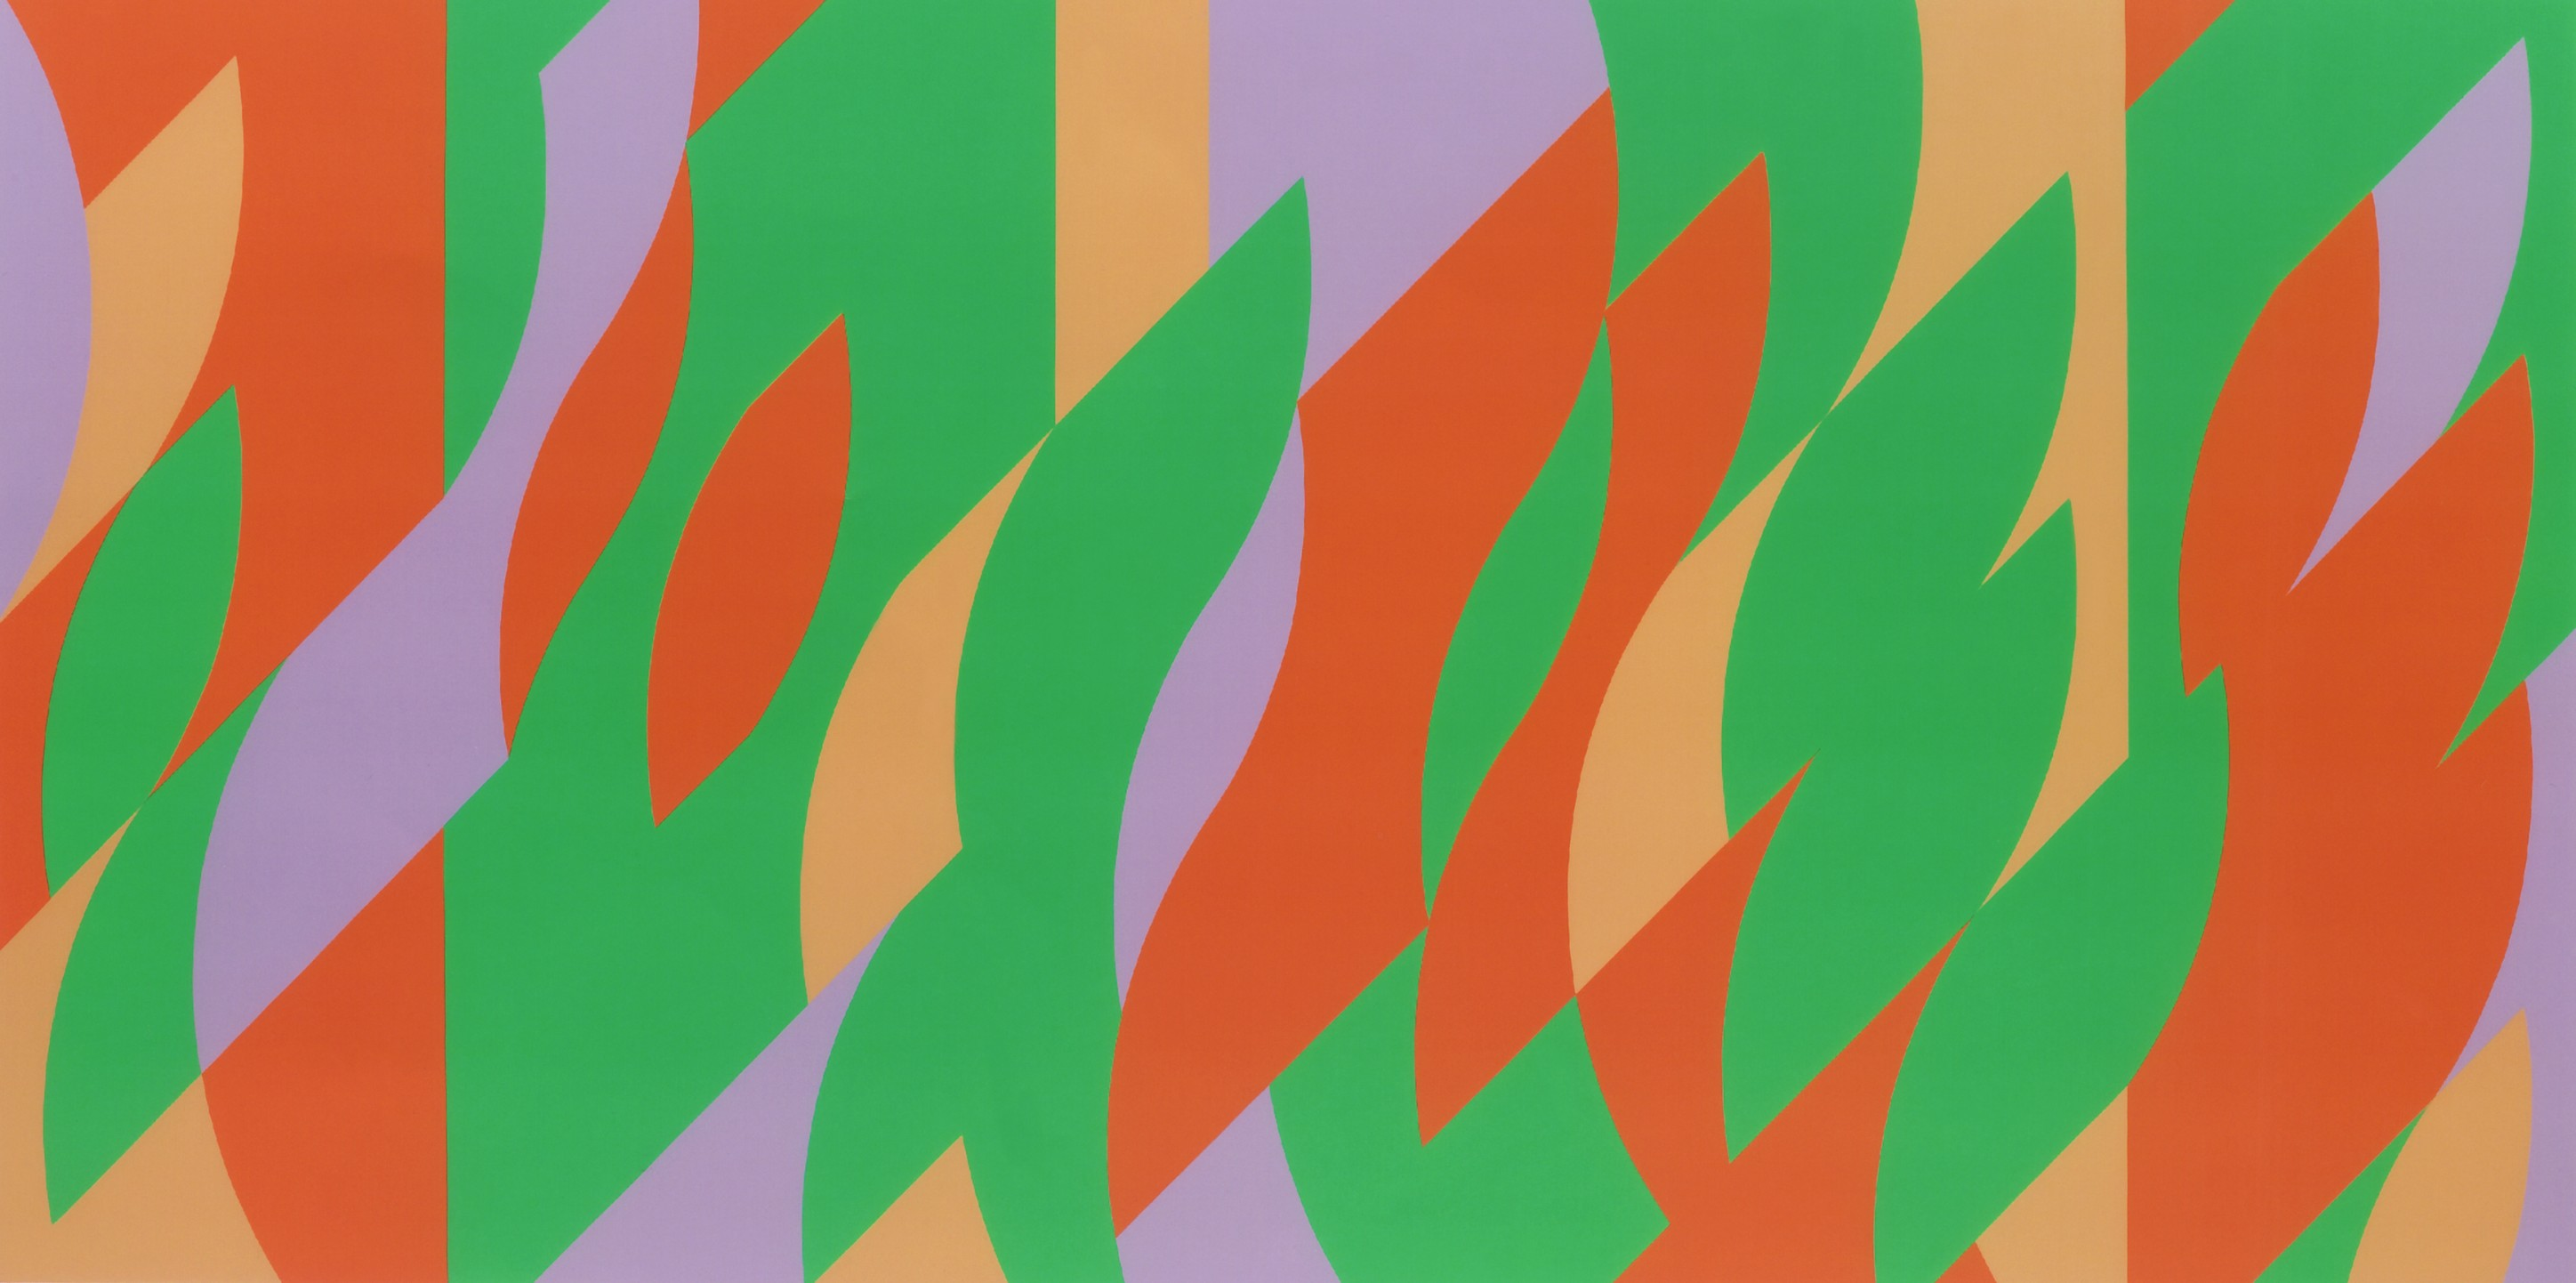 bridget riley painting with verticals 2 art basel